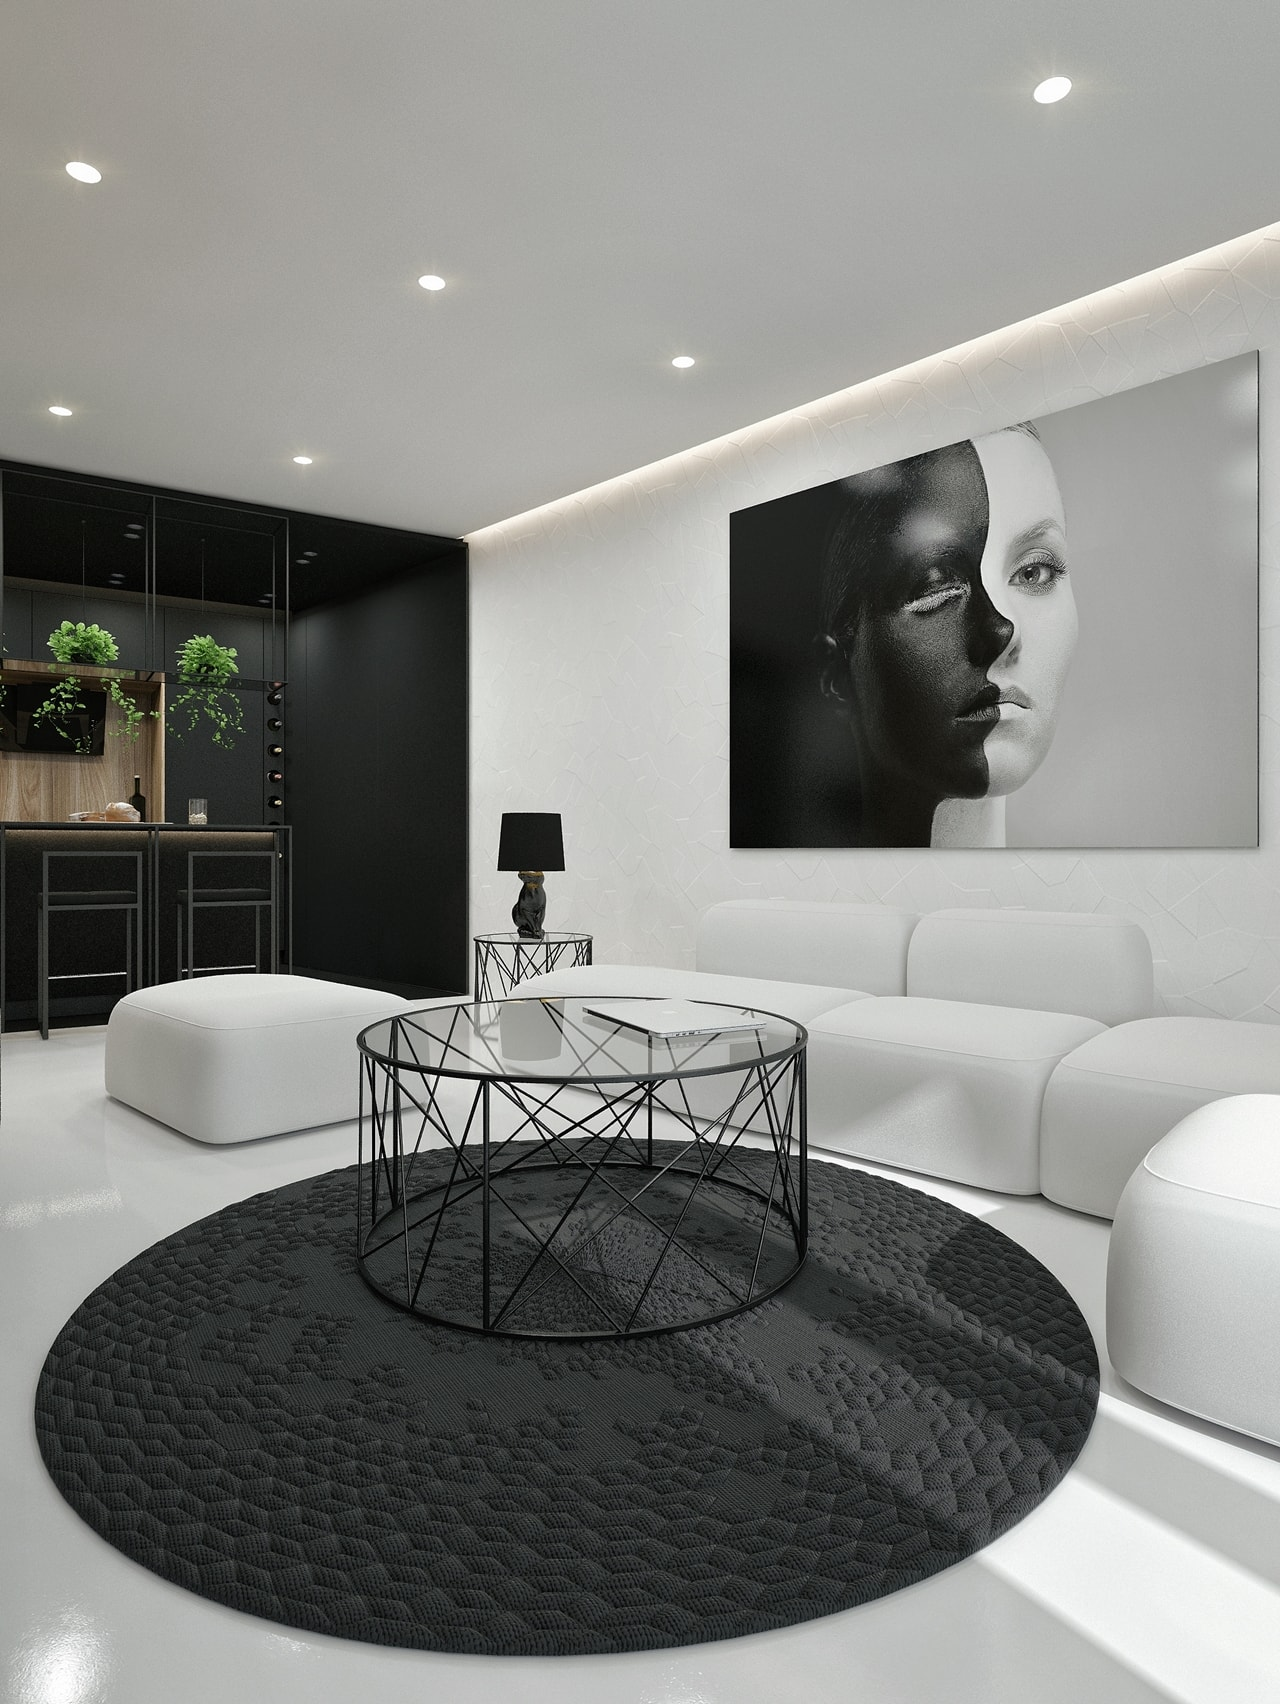 Black and white interior design ideas modern apartment by for Interior design ideas images